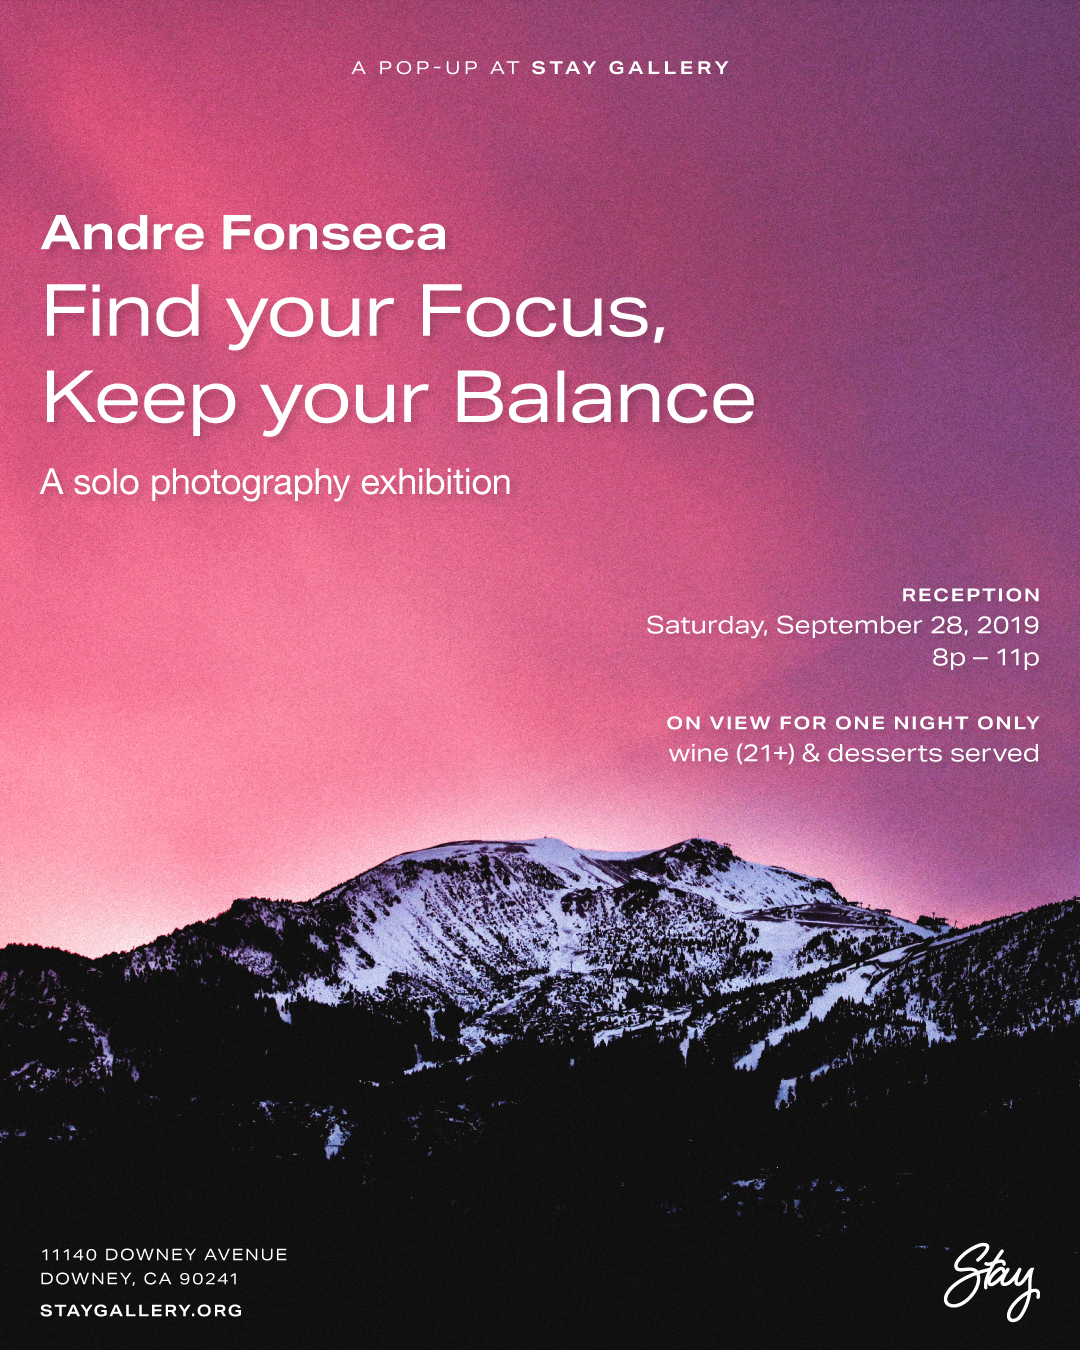 stay-gallery-pop-up-andre-fonseca-insta-flyer.png